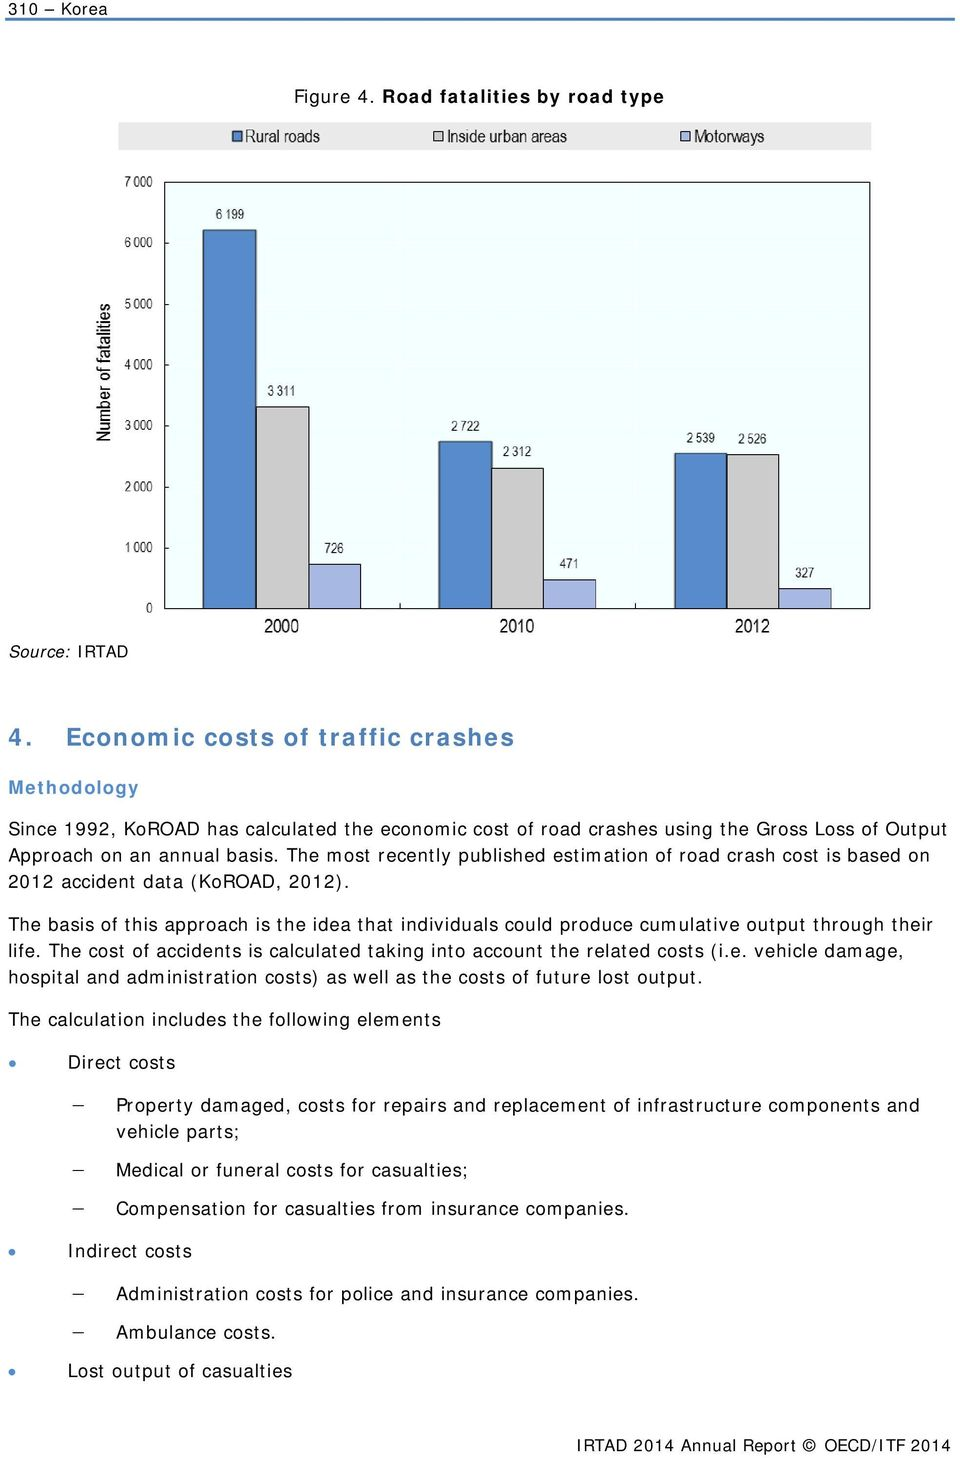 The most recently published estimation of road crash cost is based on 2012 accident data (KoROAD, 2012).